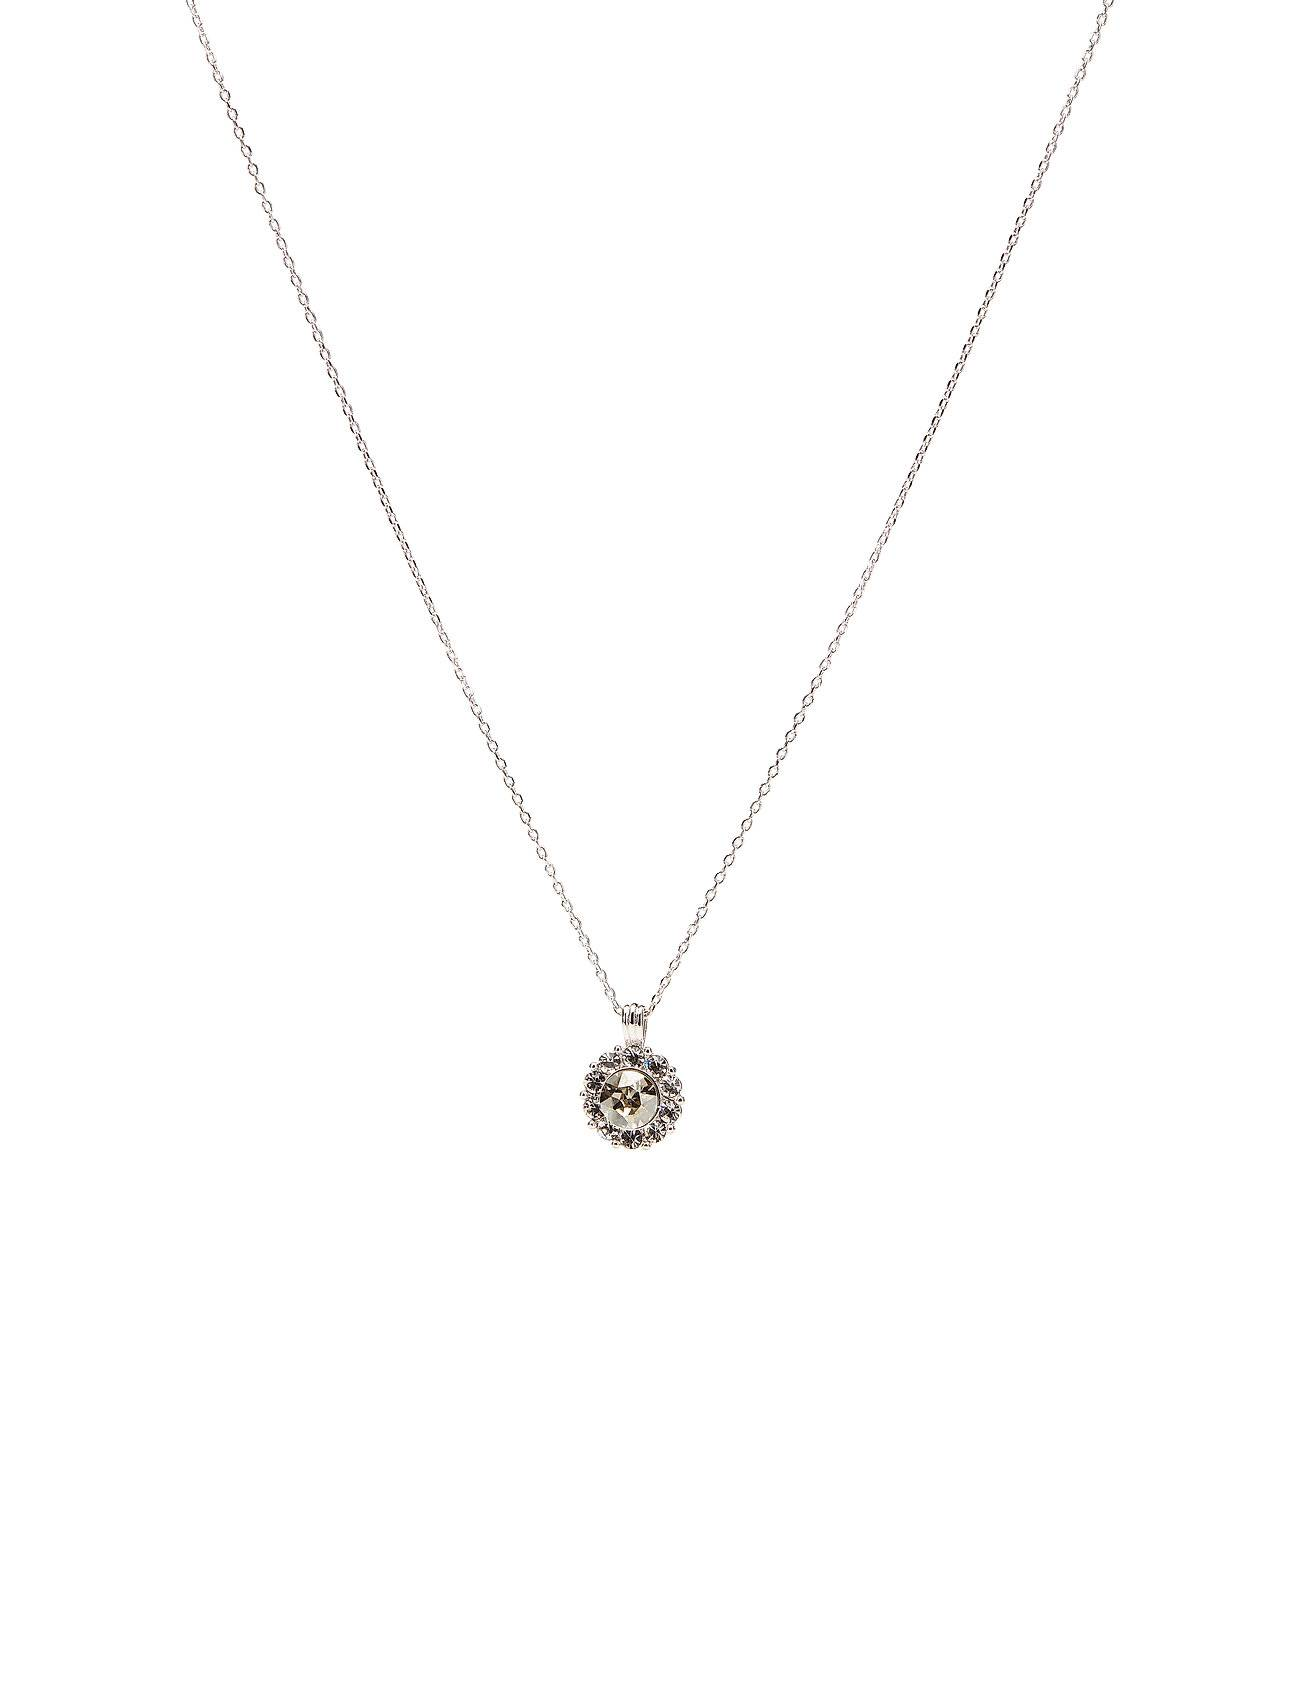 LILY AND ROSE Sofia Necklace - Crystal Accessories Jewellery Necklaces Dainty Necklaces Hopea LILY AND ROSE